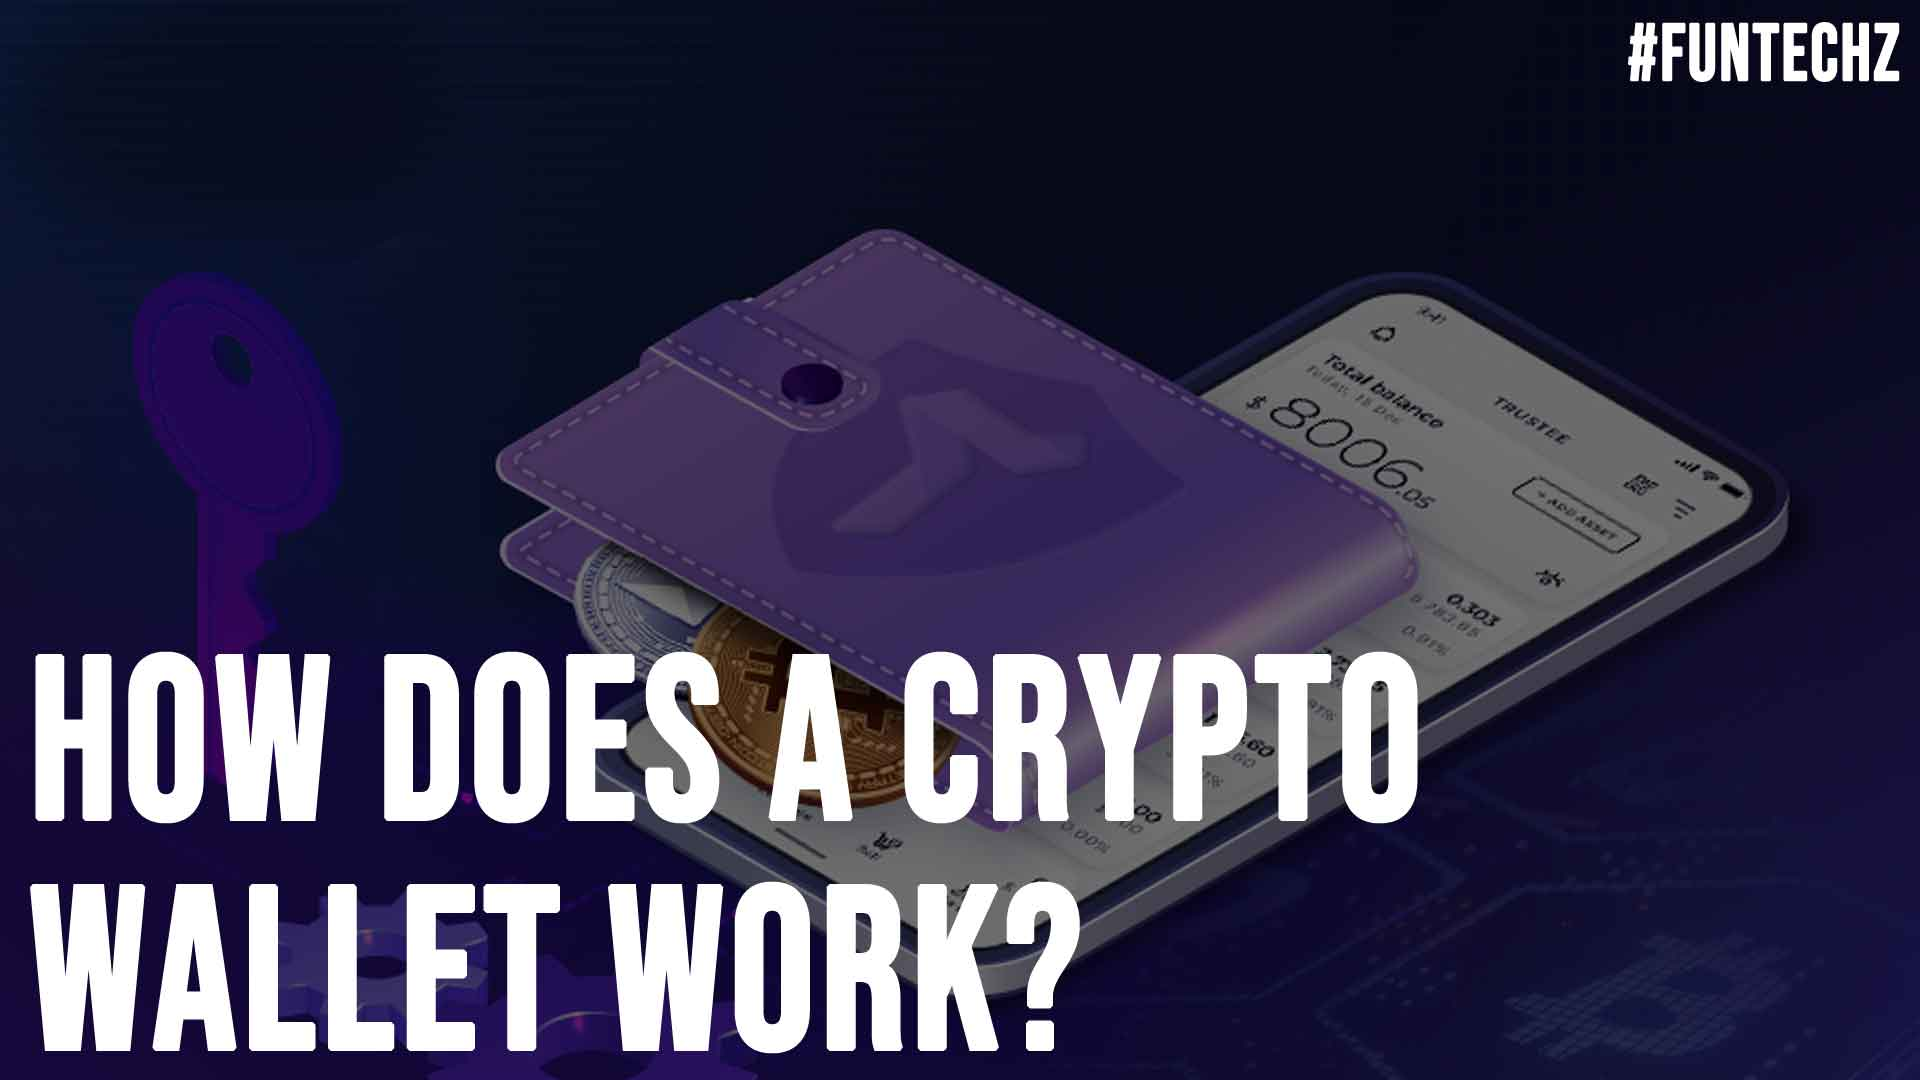 How Does a Crypto Wallet Work